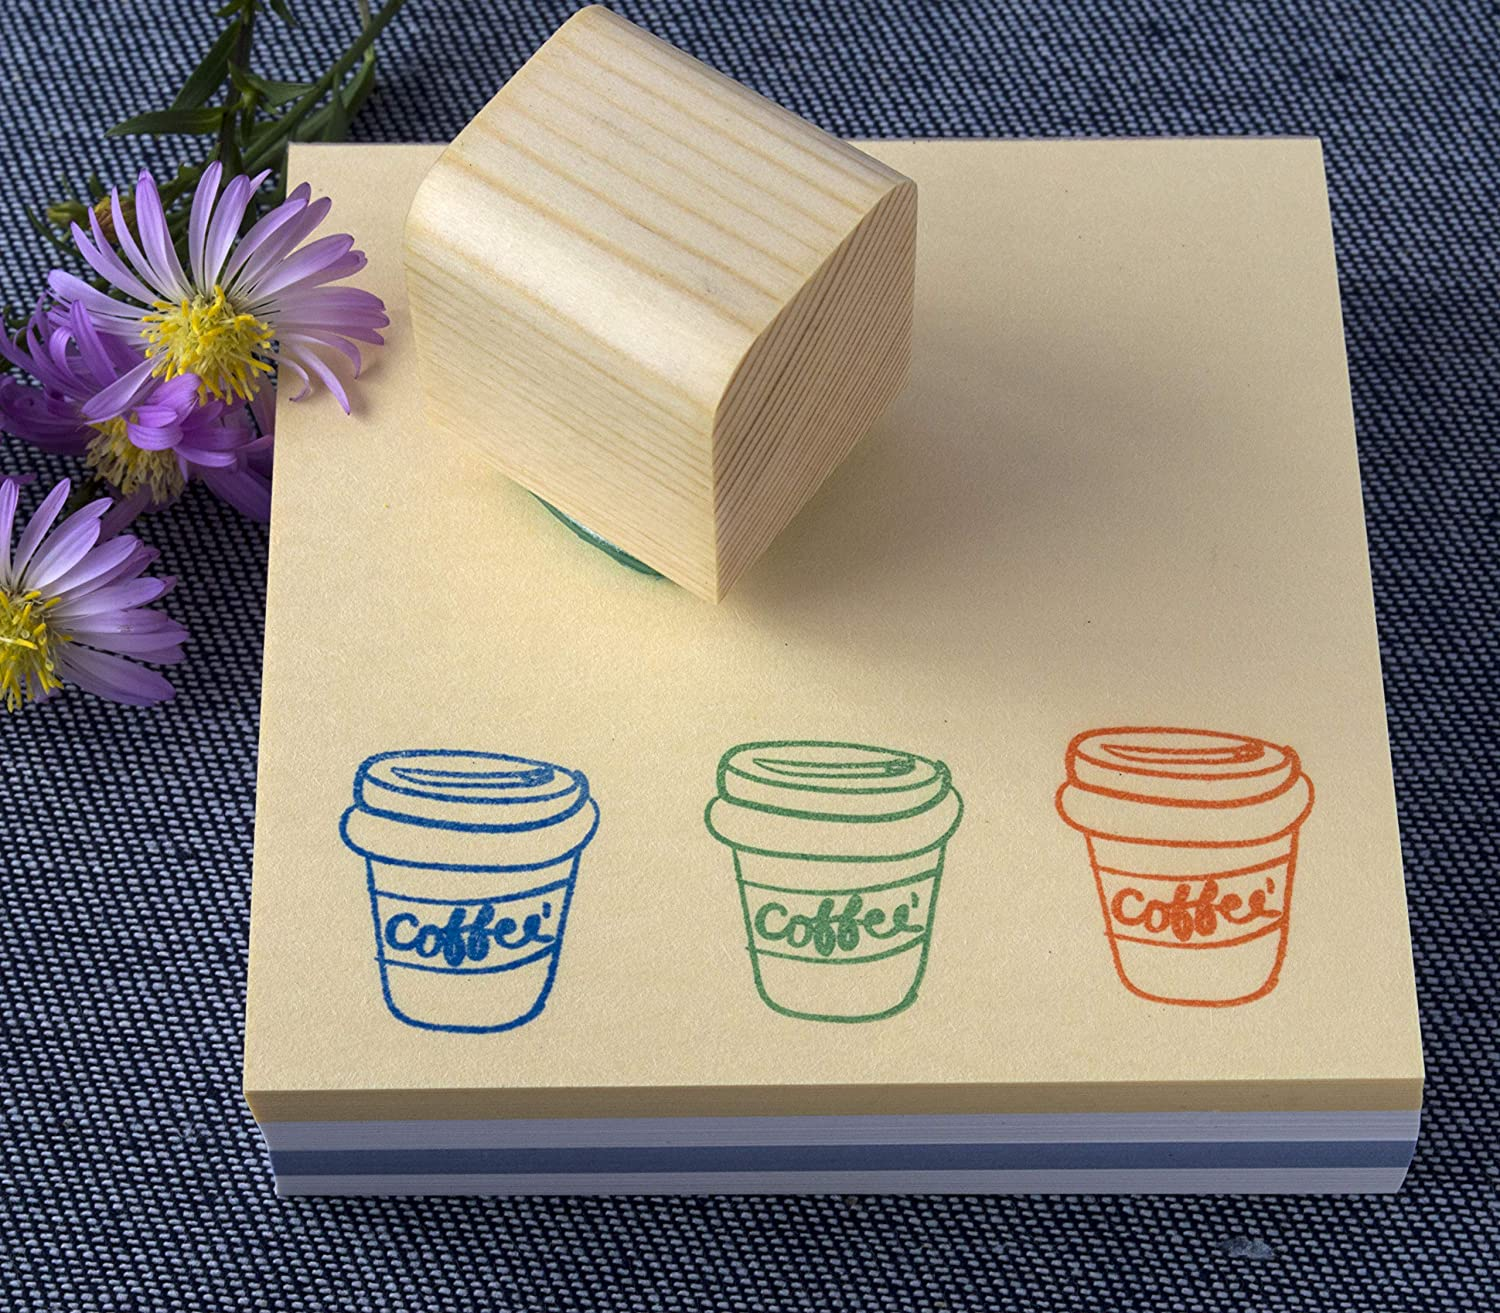 Paper-Crafting coffee cup Coffee icon Stamp 1x1 Mini Stamp Stamp Scrapbooking Card Making Logo stamp